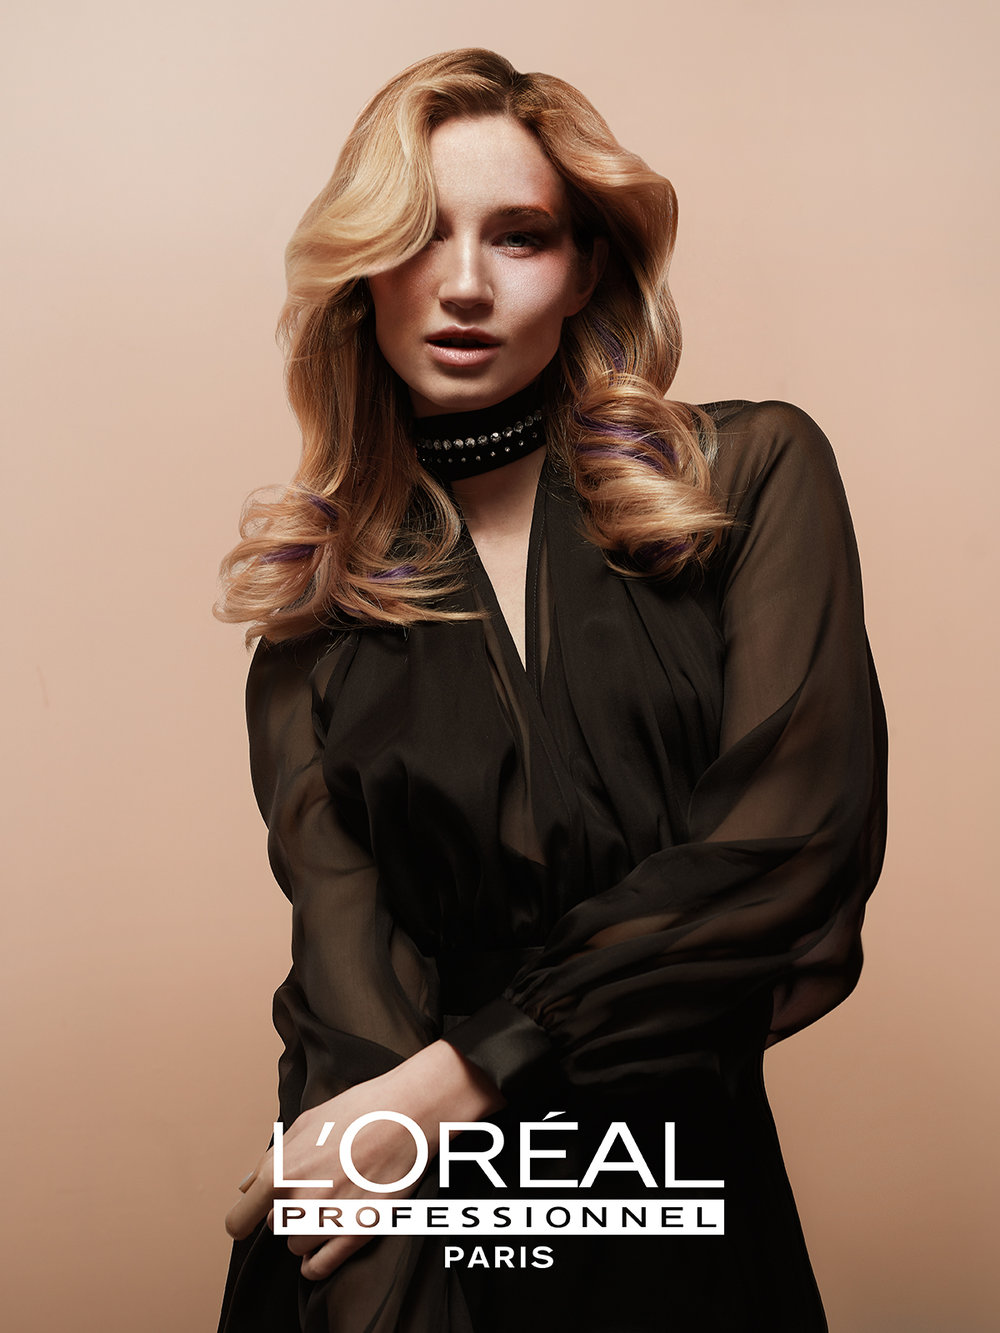 Loreal lookbook 2018 8kk.jpg